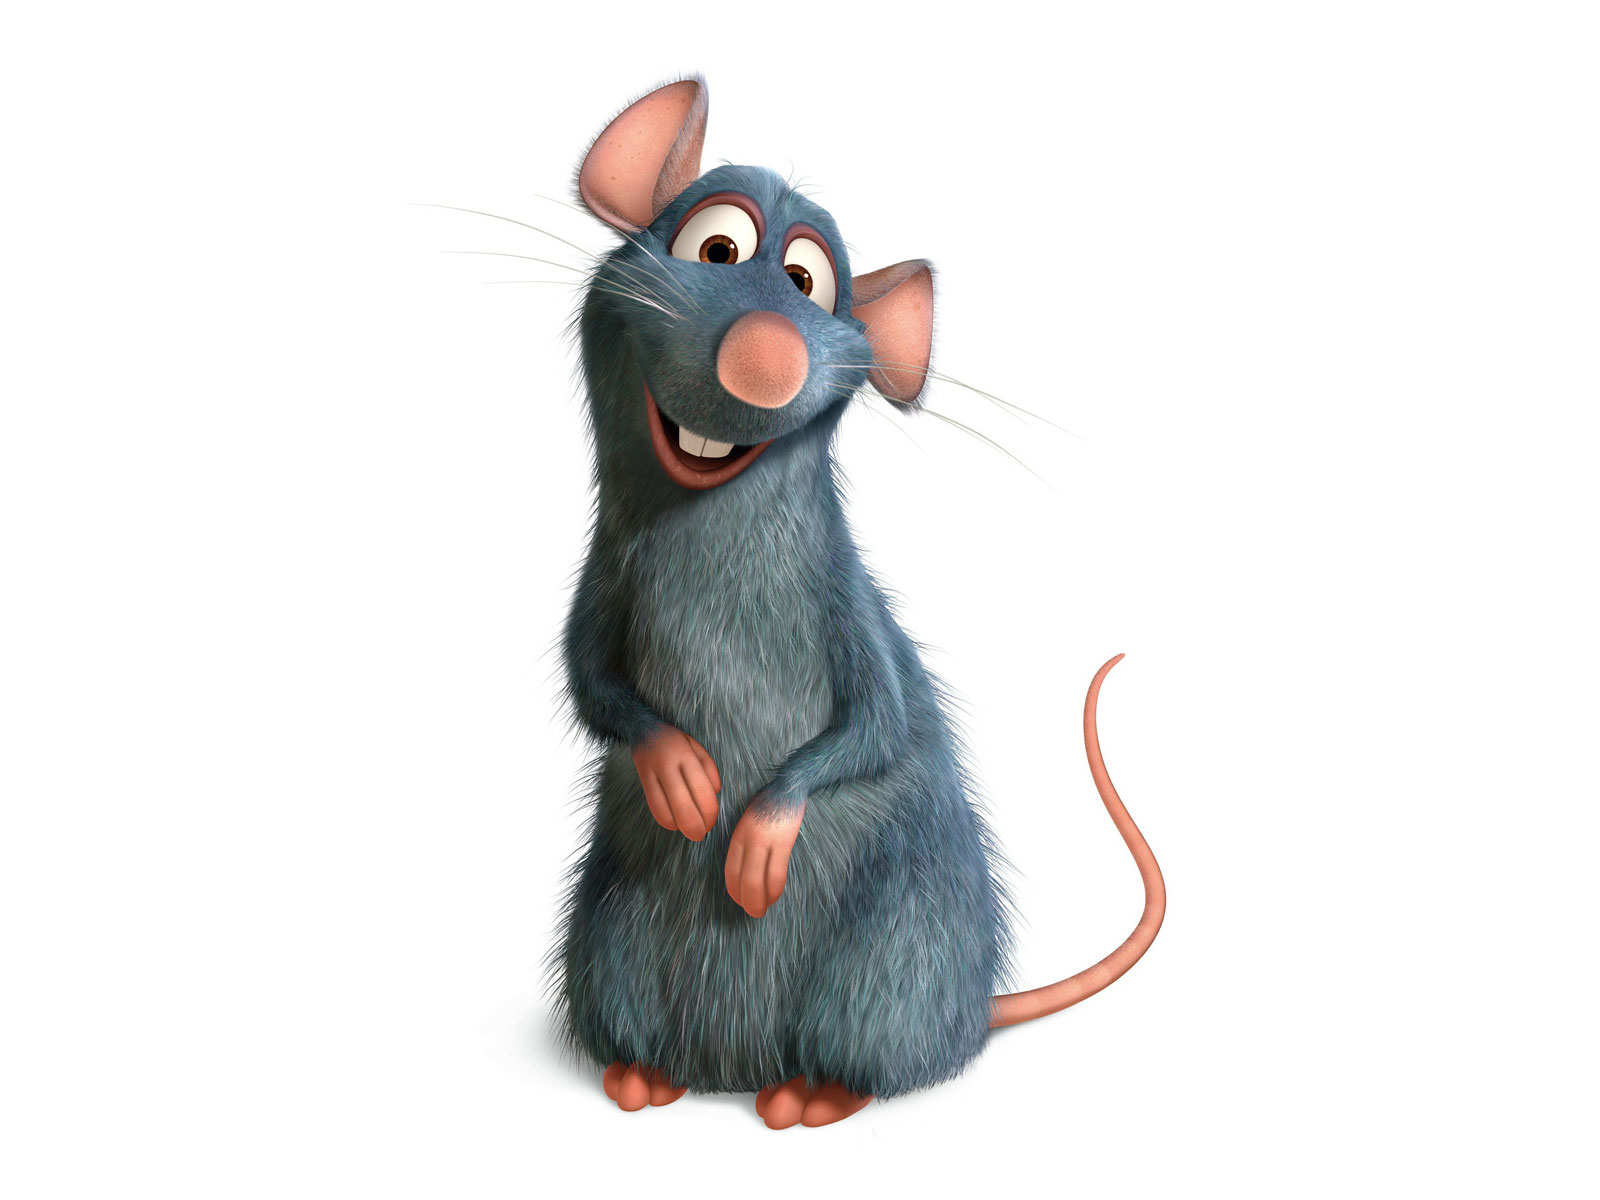 Ratatouille the rat wallpapers | Ratatouille the rat stock photos